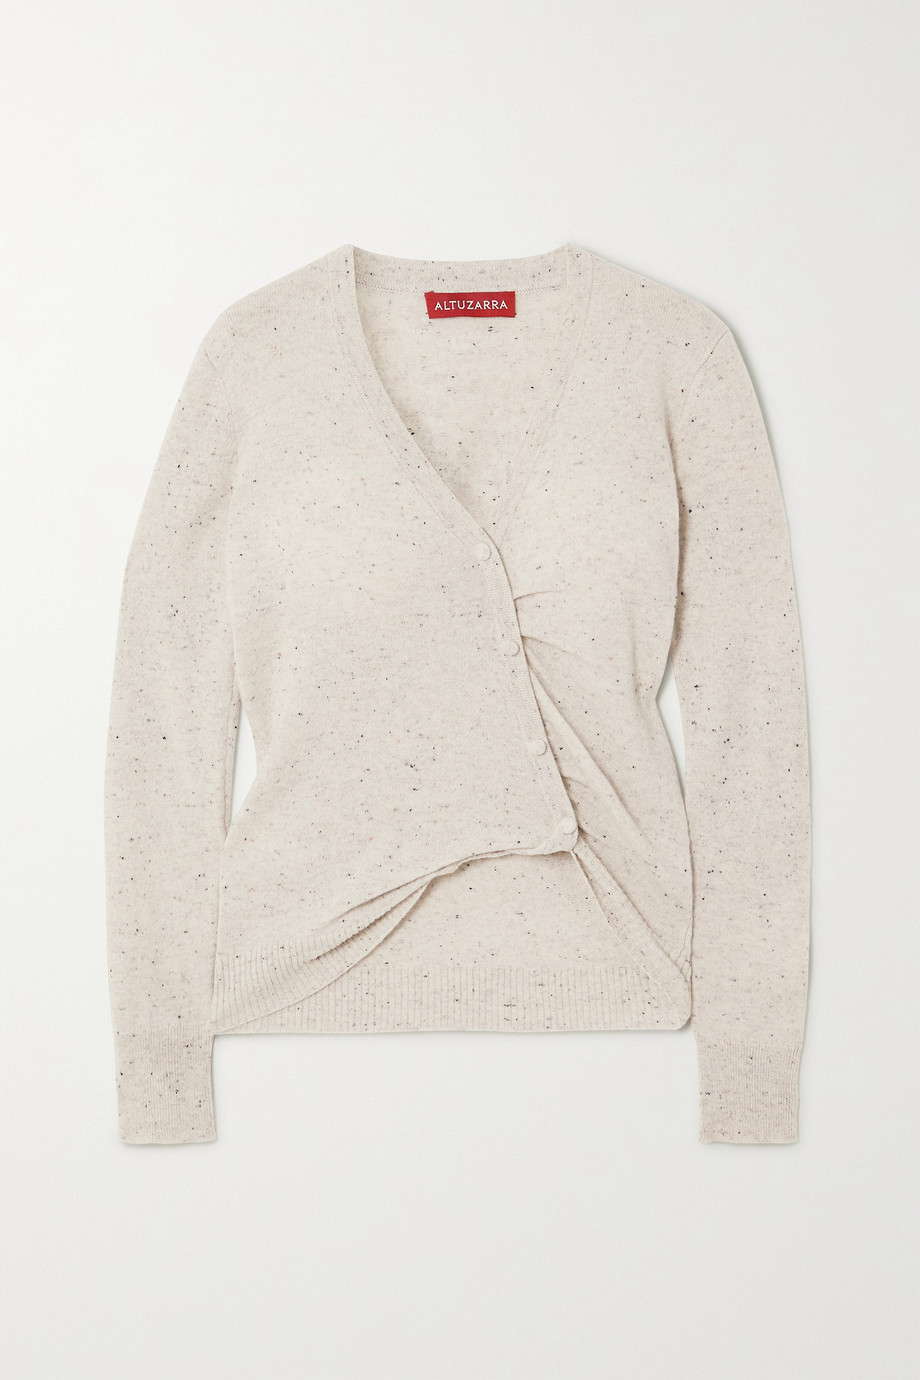 Altuzarra Takara gathered button-embellished cashmere sweater